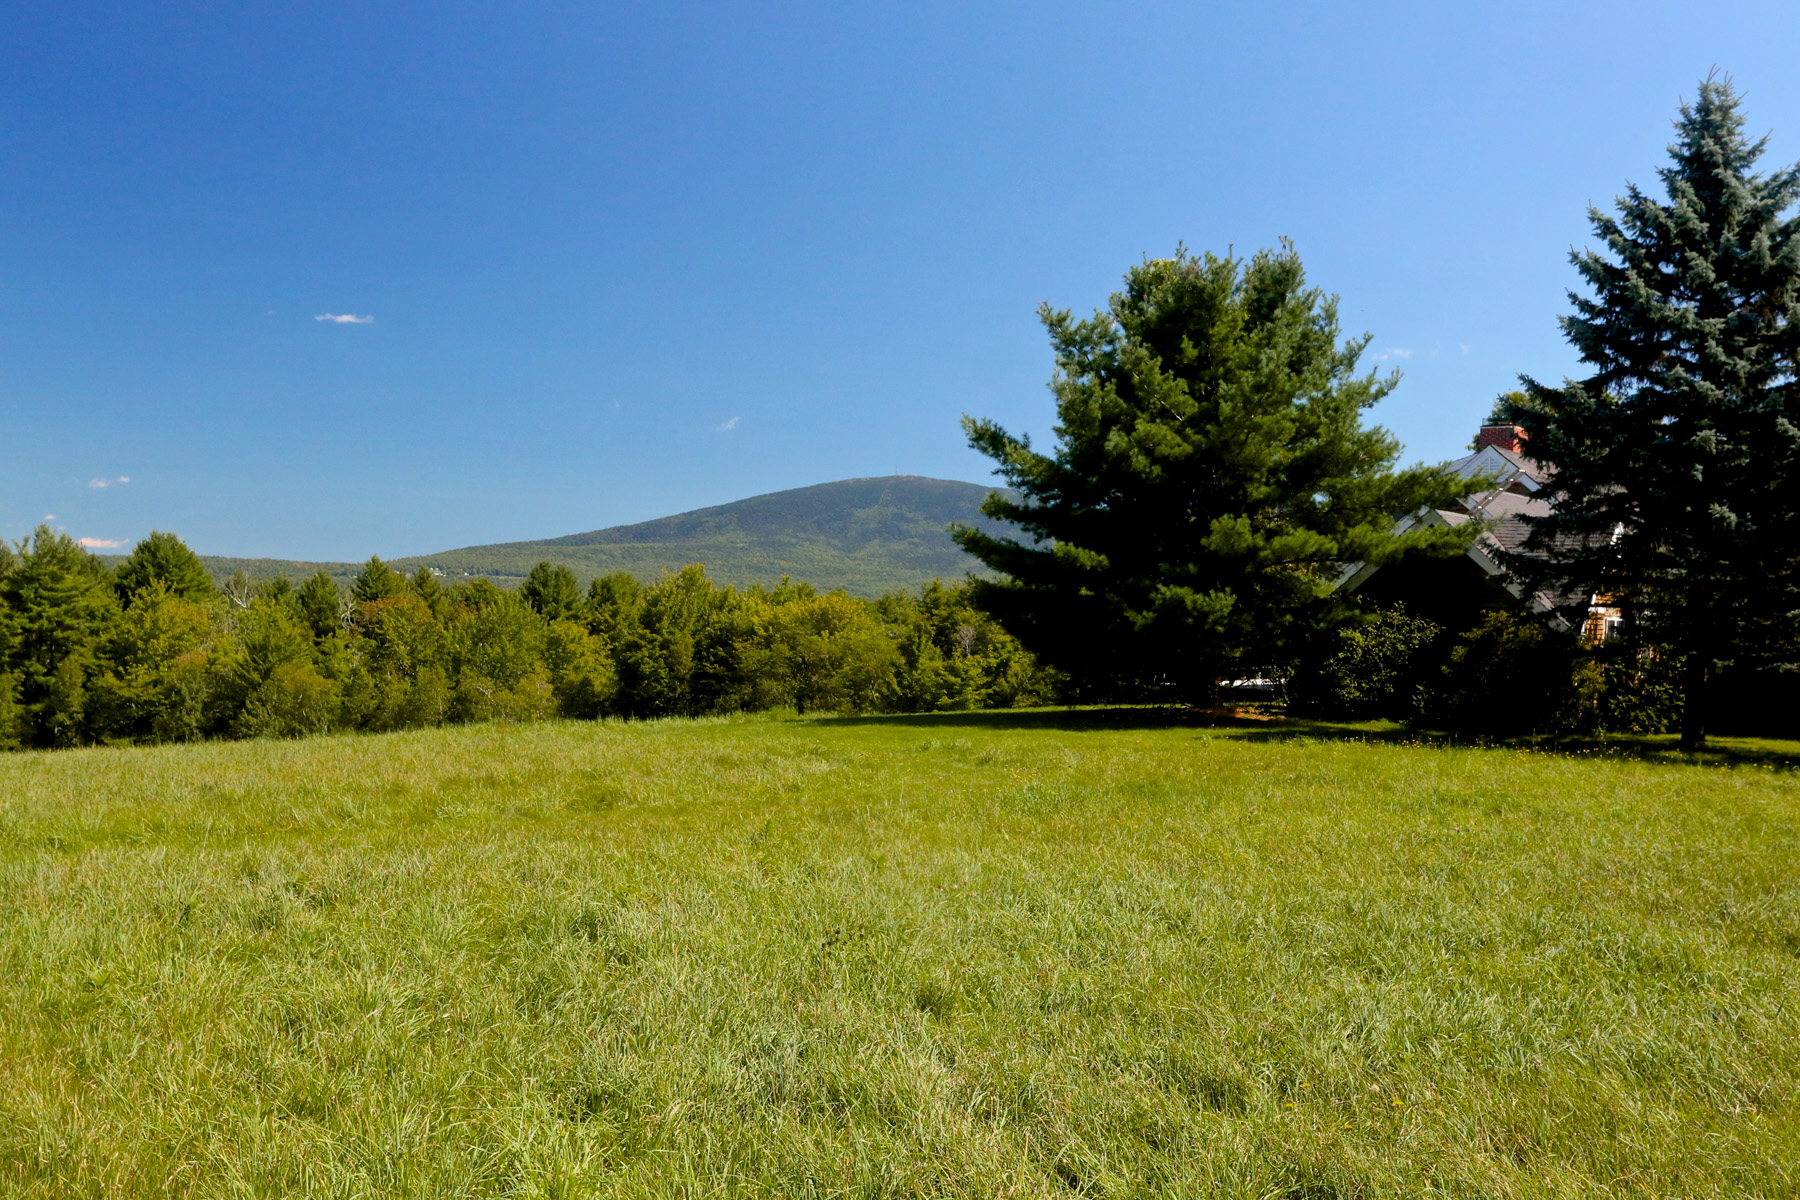 Single Family Home for Sale at Commanding Mt. Kears 127 Sutton Rd New London, New Hampshire 03257 United States